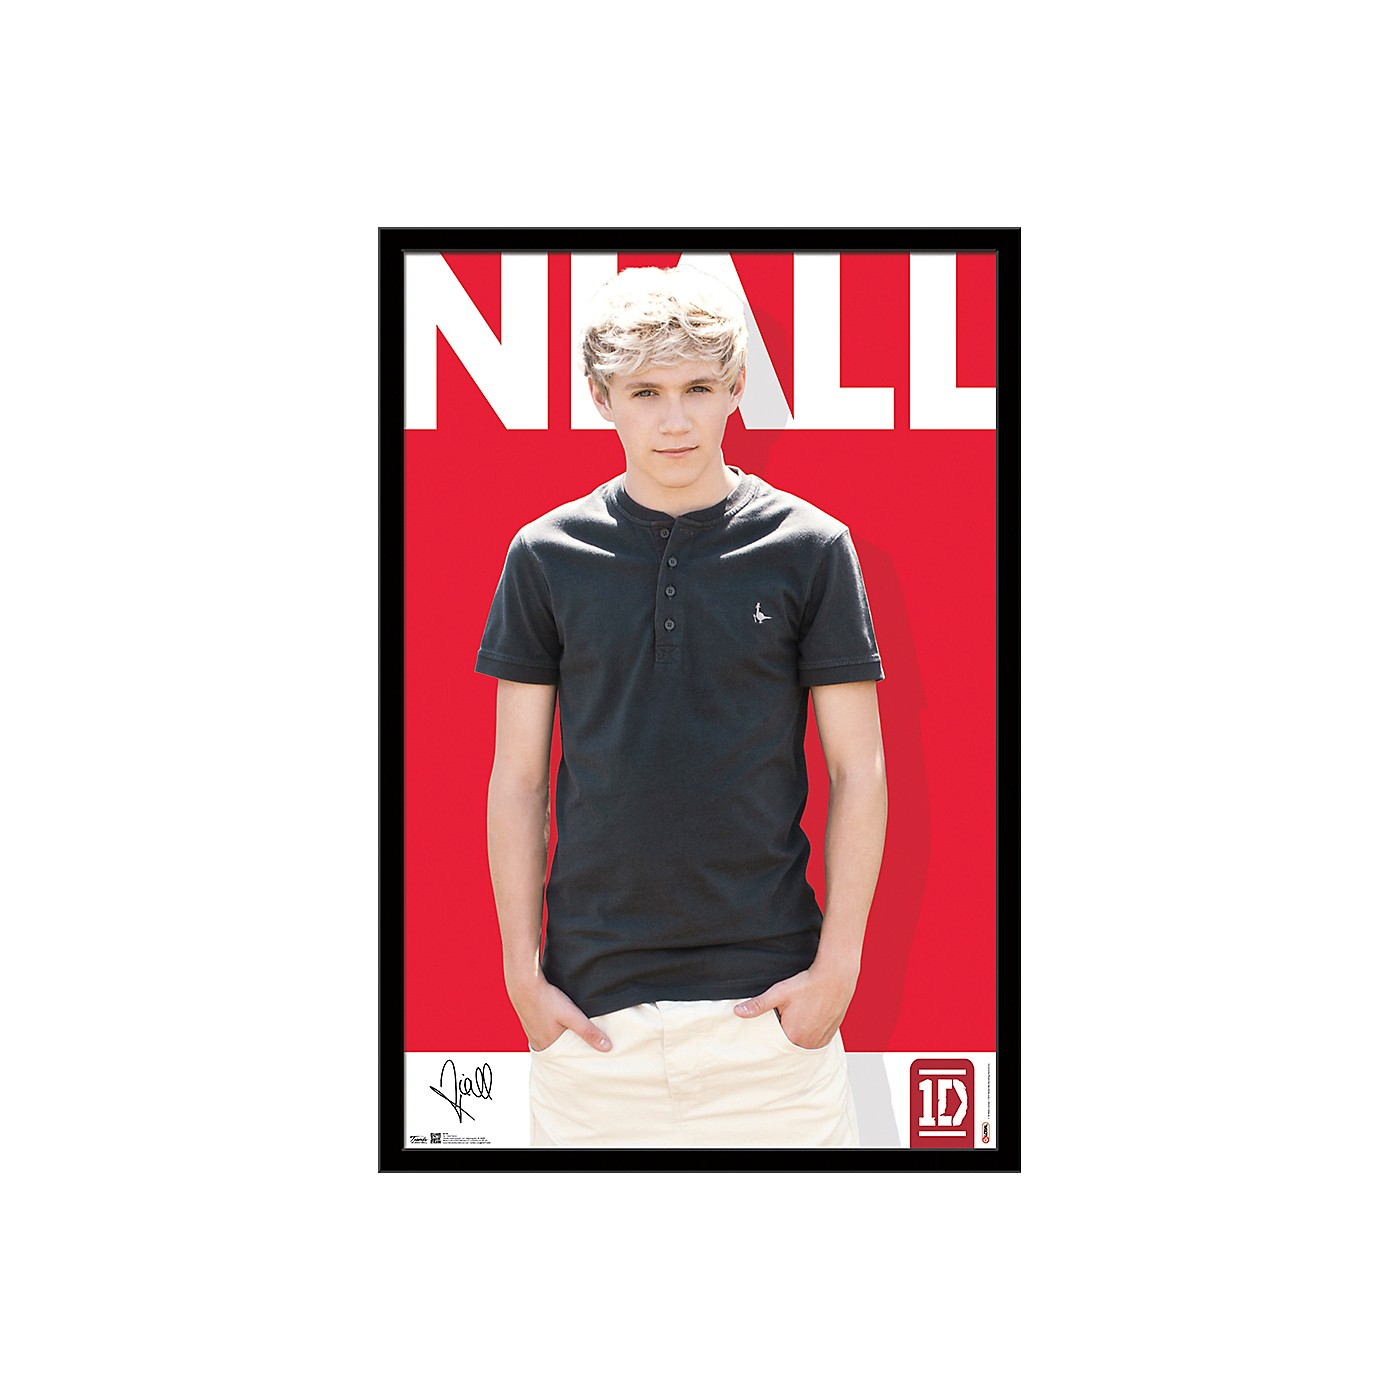 Trends International One Direction - Niall Horan Poster thumbnail